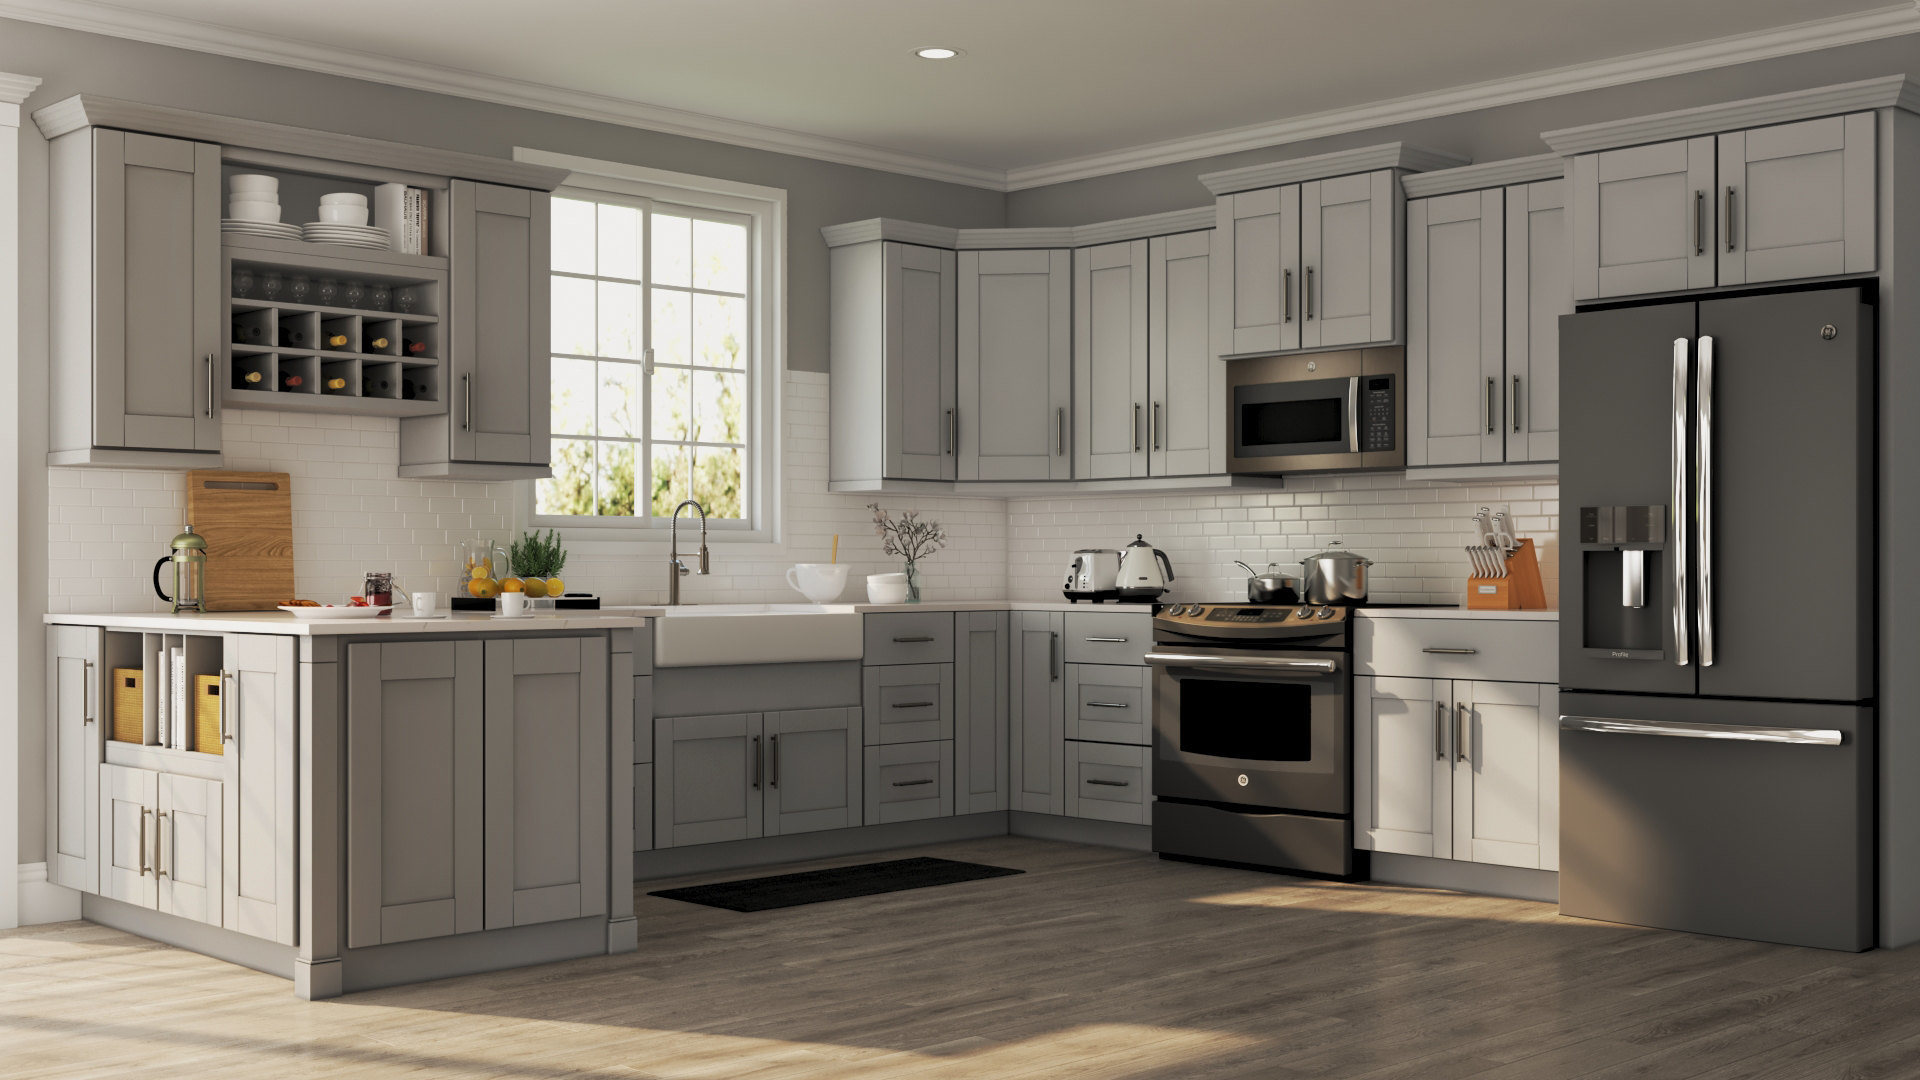 Shaker Specialty Cabinets In Dove Gray Kitchen The Home Depot - Dove grey kitchen cabinets